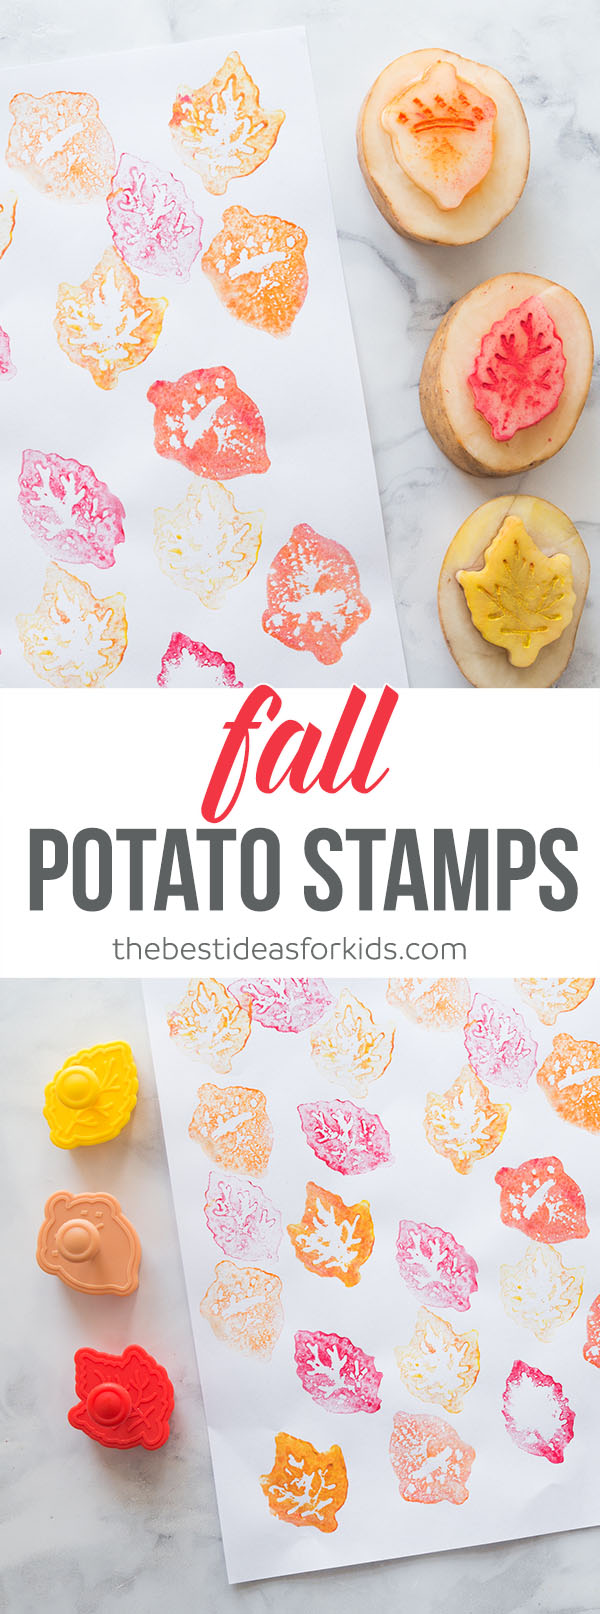 Fall Potato Stamps